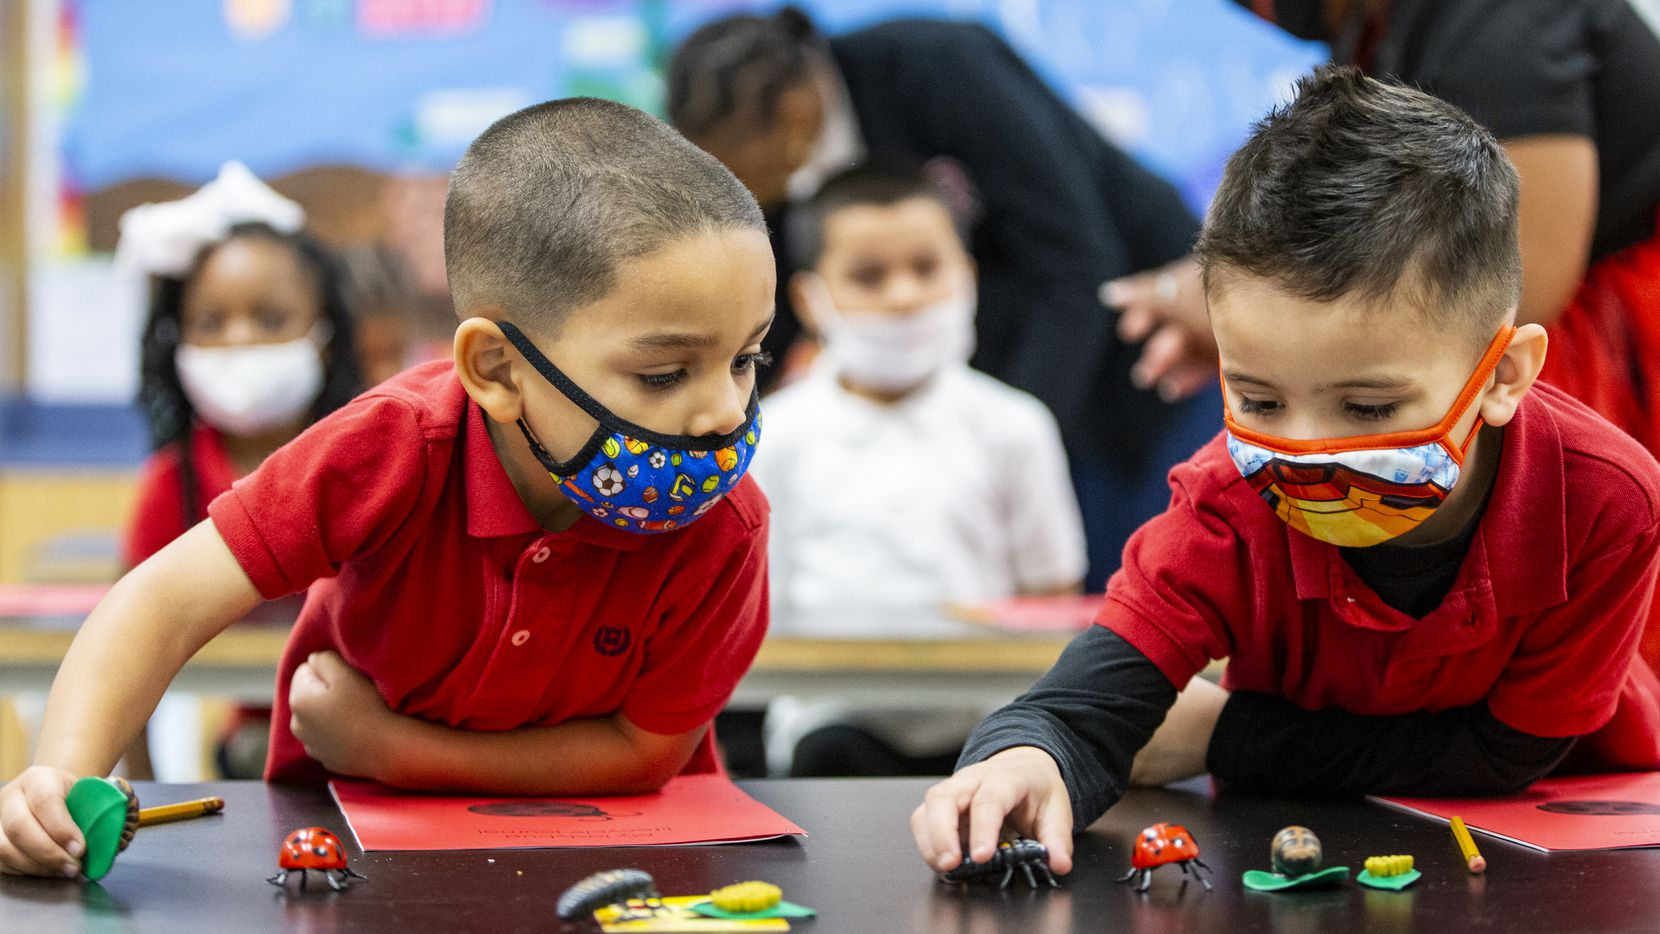 Izaiah Loving, left, and Damian Morris arrange plastic models of the different stages of a ladybugs life cycle during a pre-k through second grade science lab at High Pointe Elementary School in Cedar Hill, Thursday, May 20, 2021. In the lab students learn age specific science lessons. (Brandon Wade/Special Contributor)